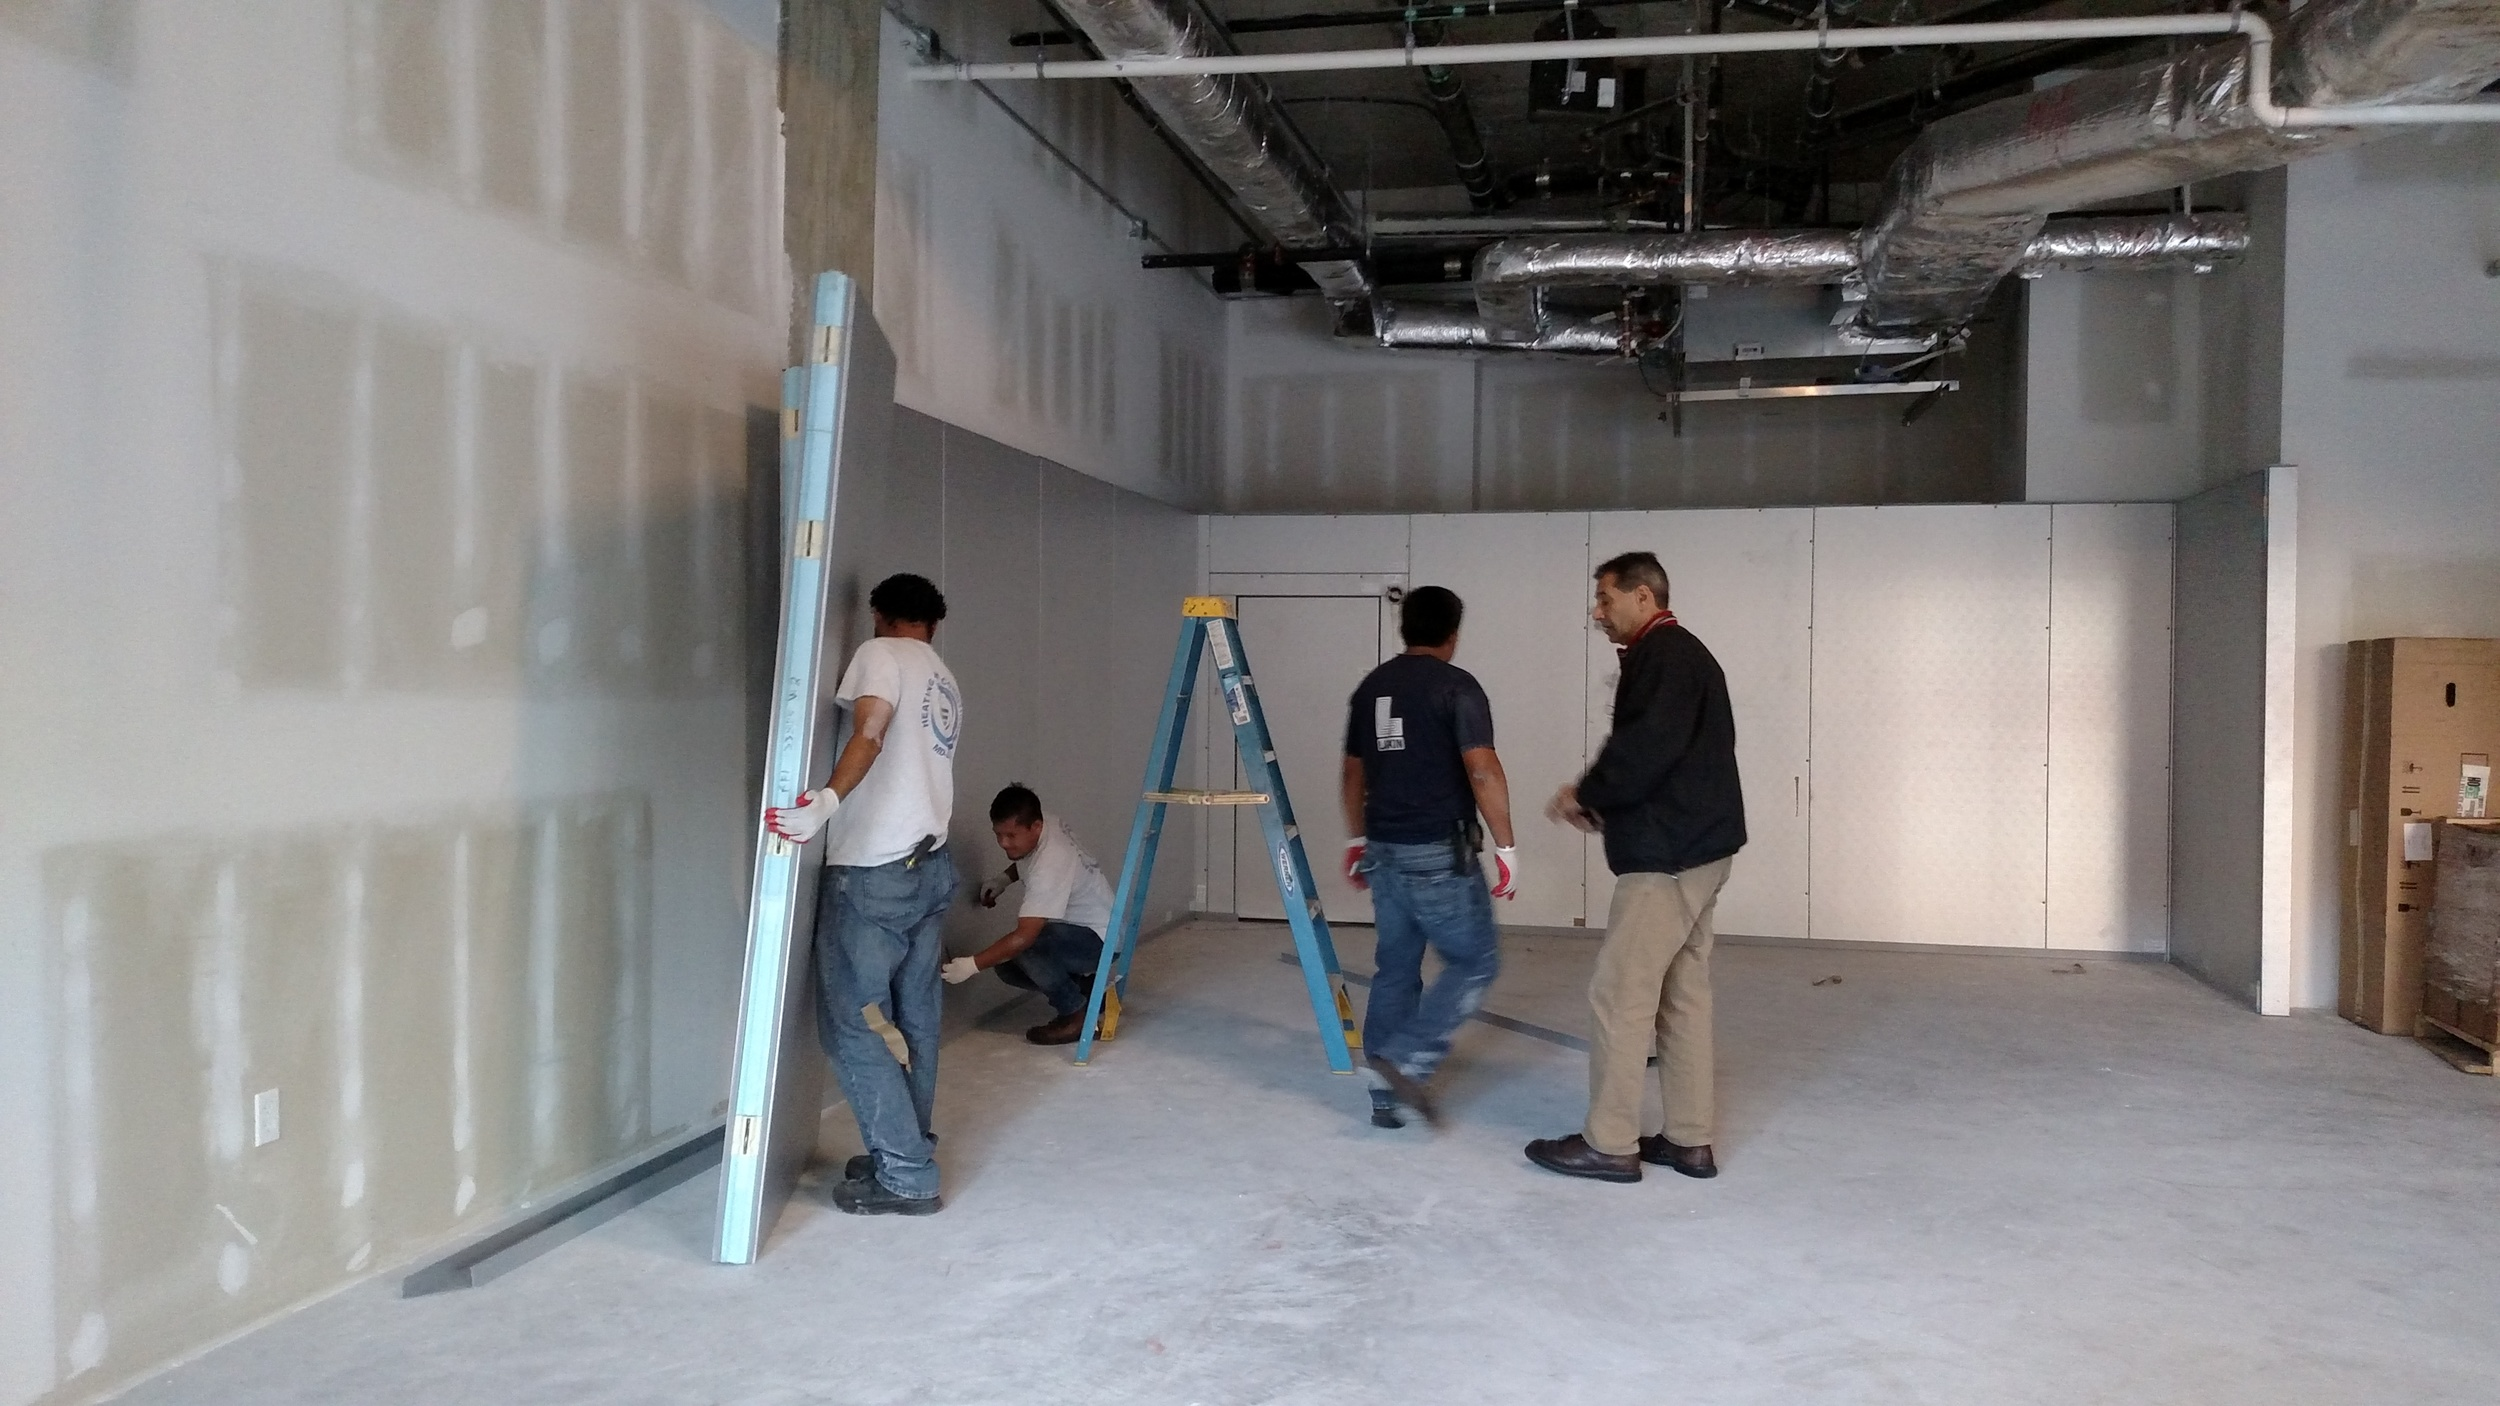 In goes the walk-in cooler